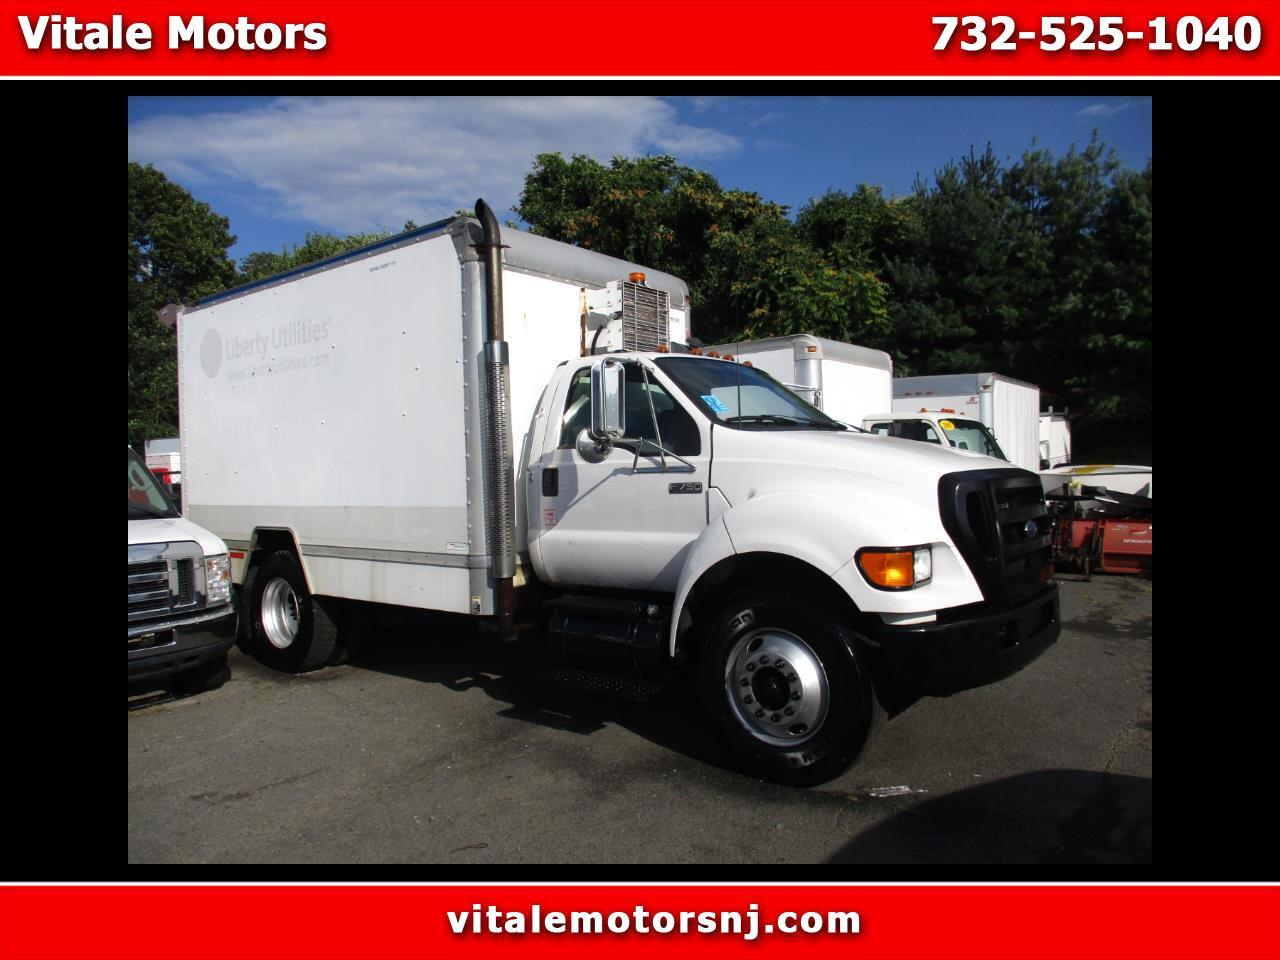 2006 Ford F-750 BOX TRUCK DIESEL 53K MI. MECHANICS TRUCK